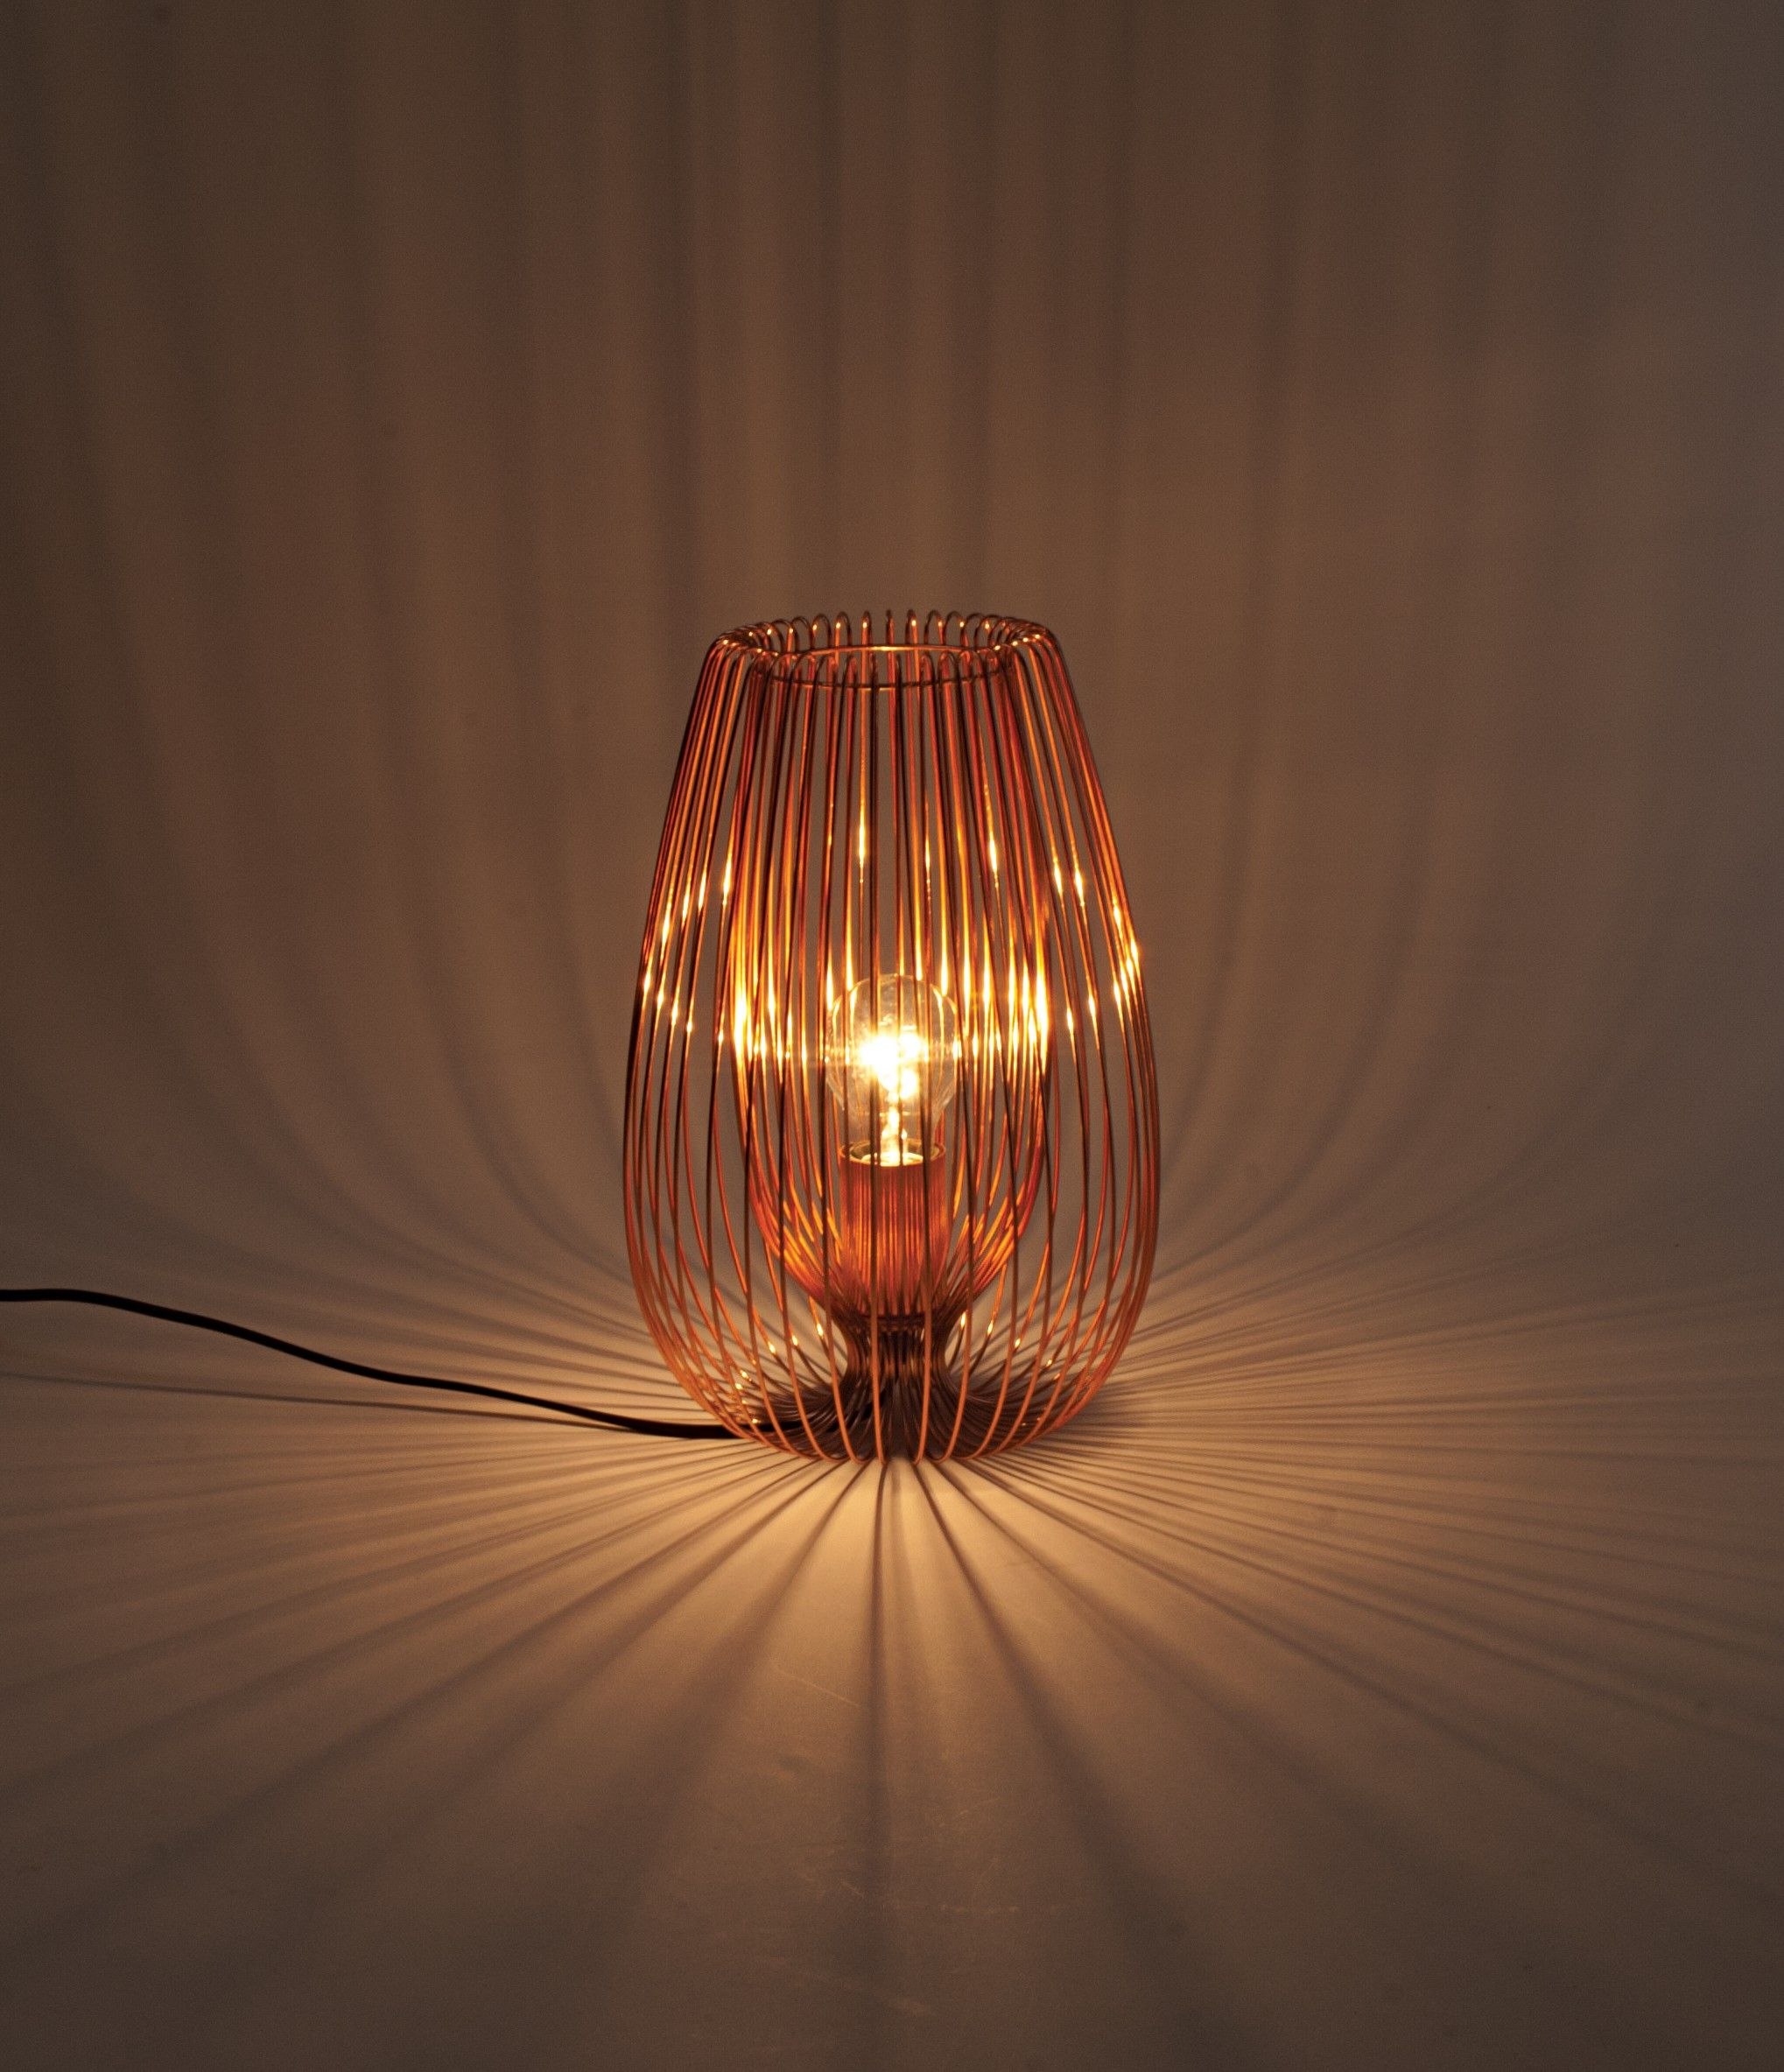 Copper wire 60w e27 table lamp copper wire e27 light bulb and copper wire 60w e27 table lamp greentooth